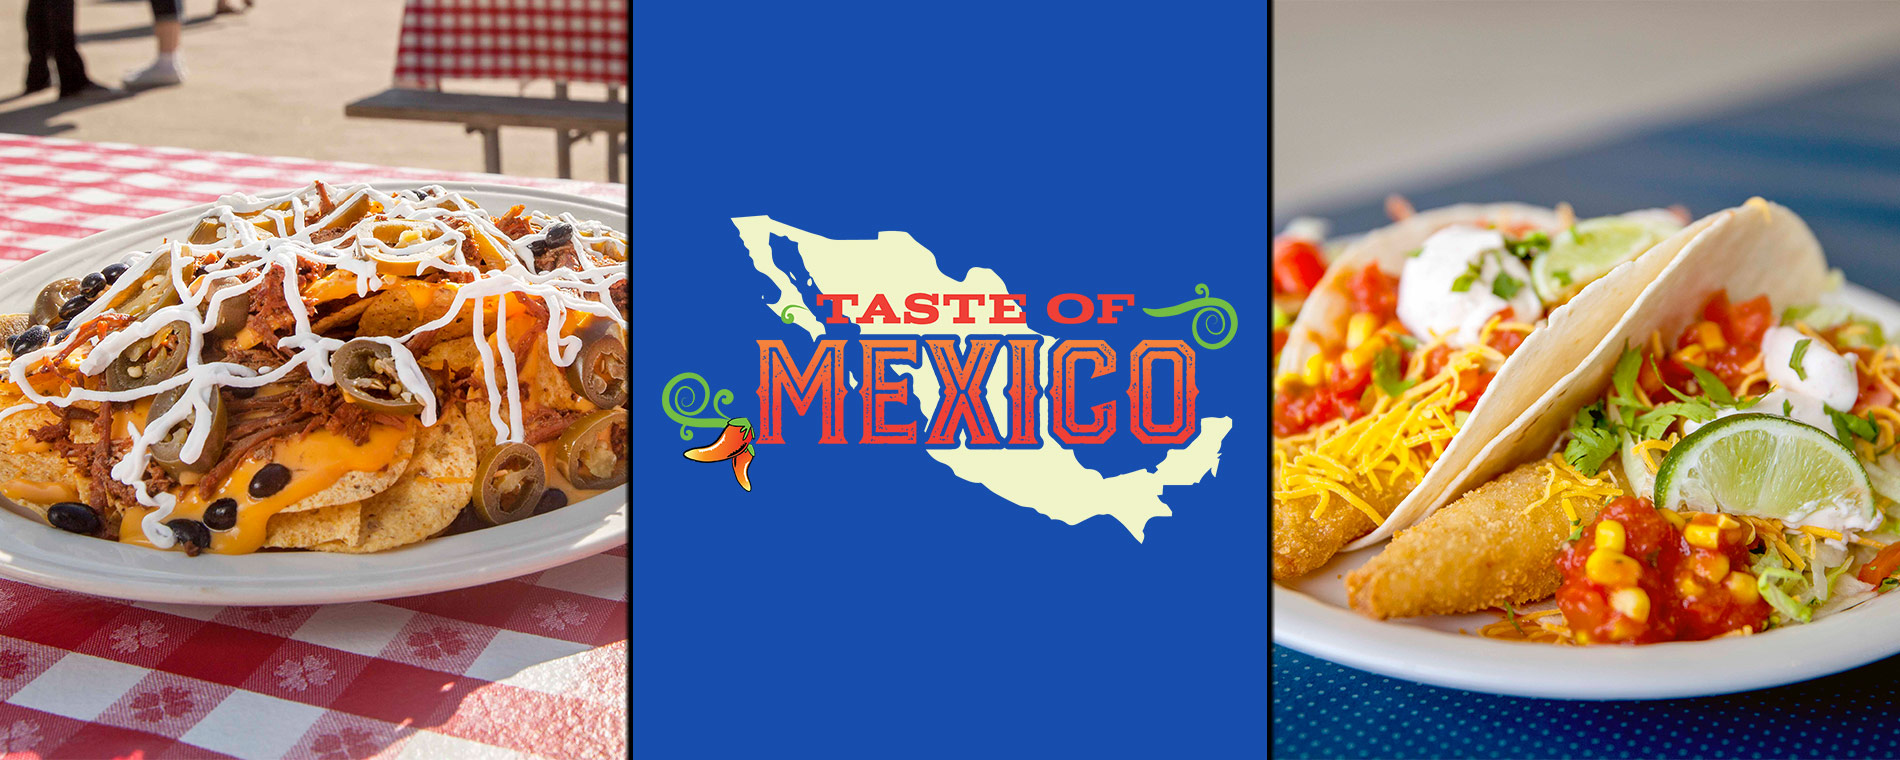 Mexican Food Festival at Canada's Wonderland